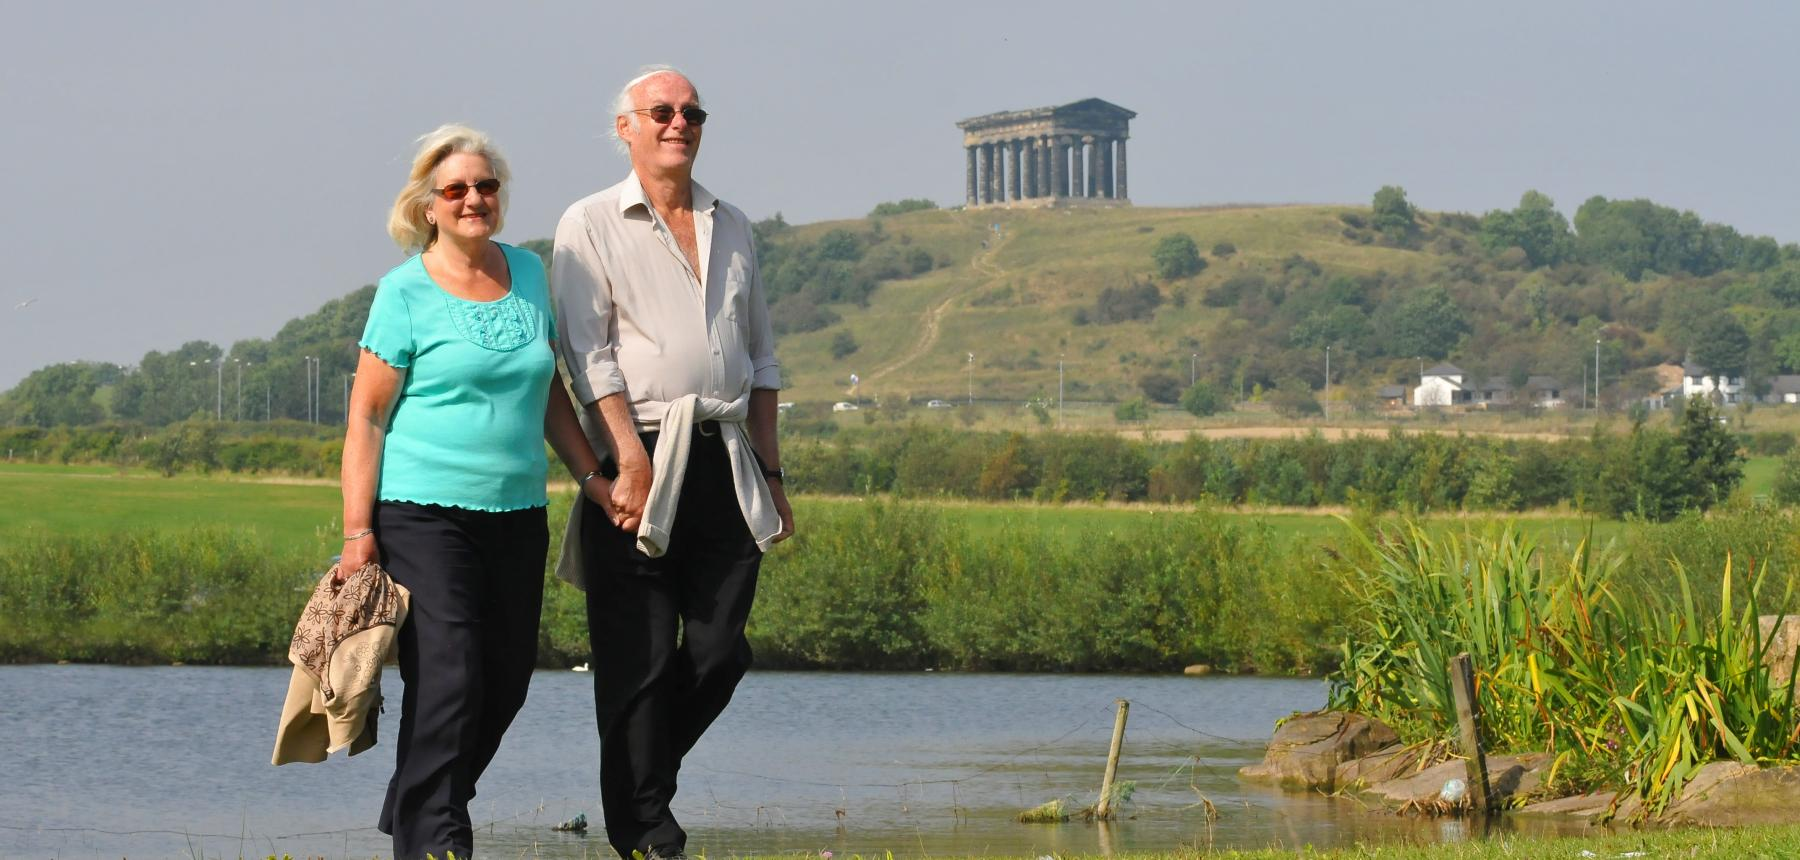 Elderly couple at Herrington Country Park